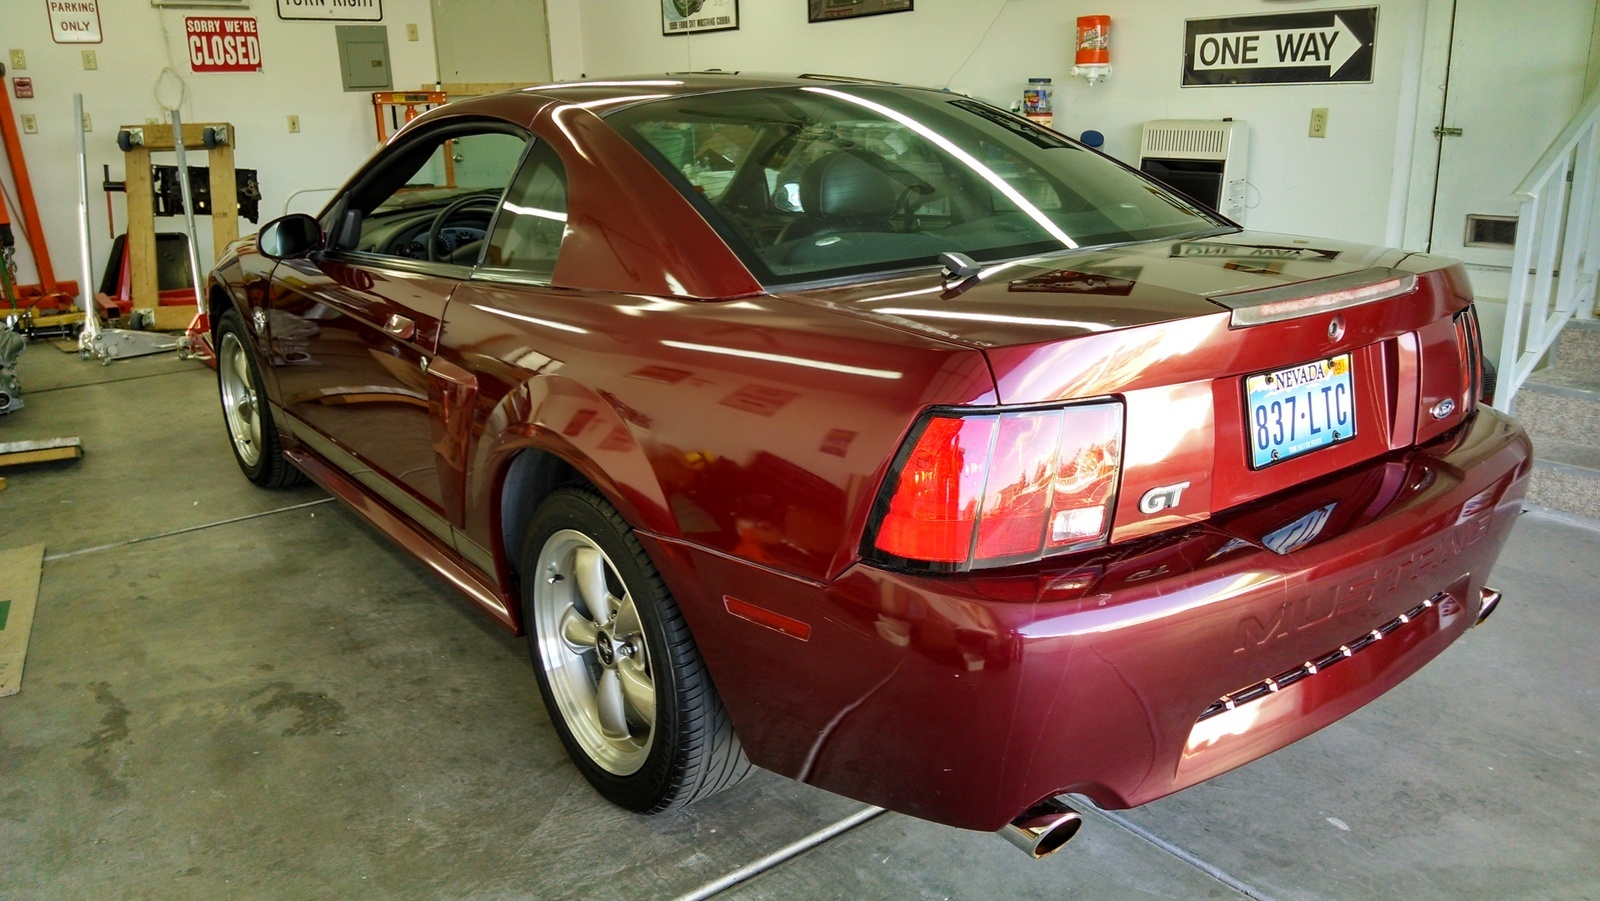 Ford Mustang Questions Is The 35th Anniversary Worth More Than 2002 Mach Sound System Just 1999 Gt Cargurus